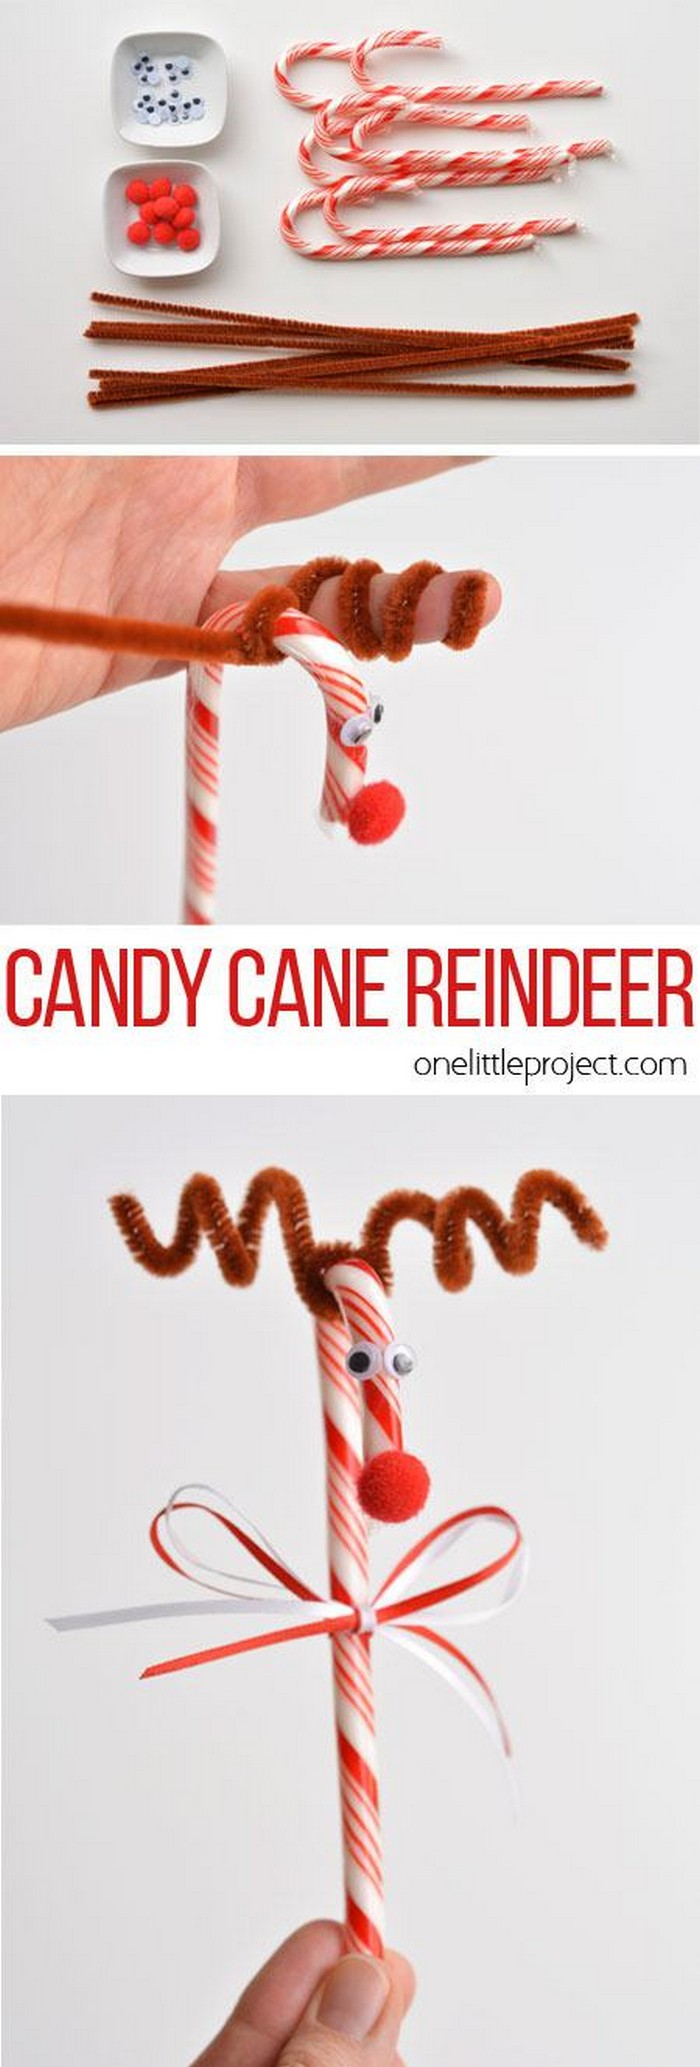 Candy Cane Reindeer 25 Interesting Ideas to Make Easy Christmas Crafts